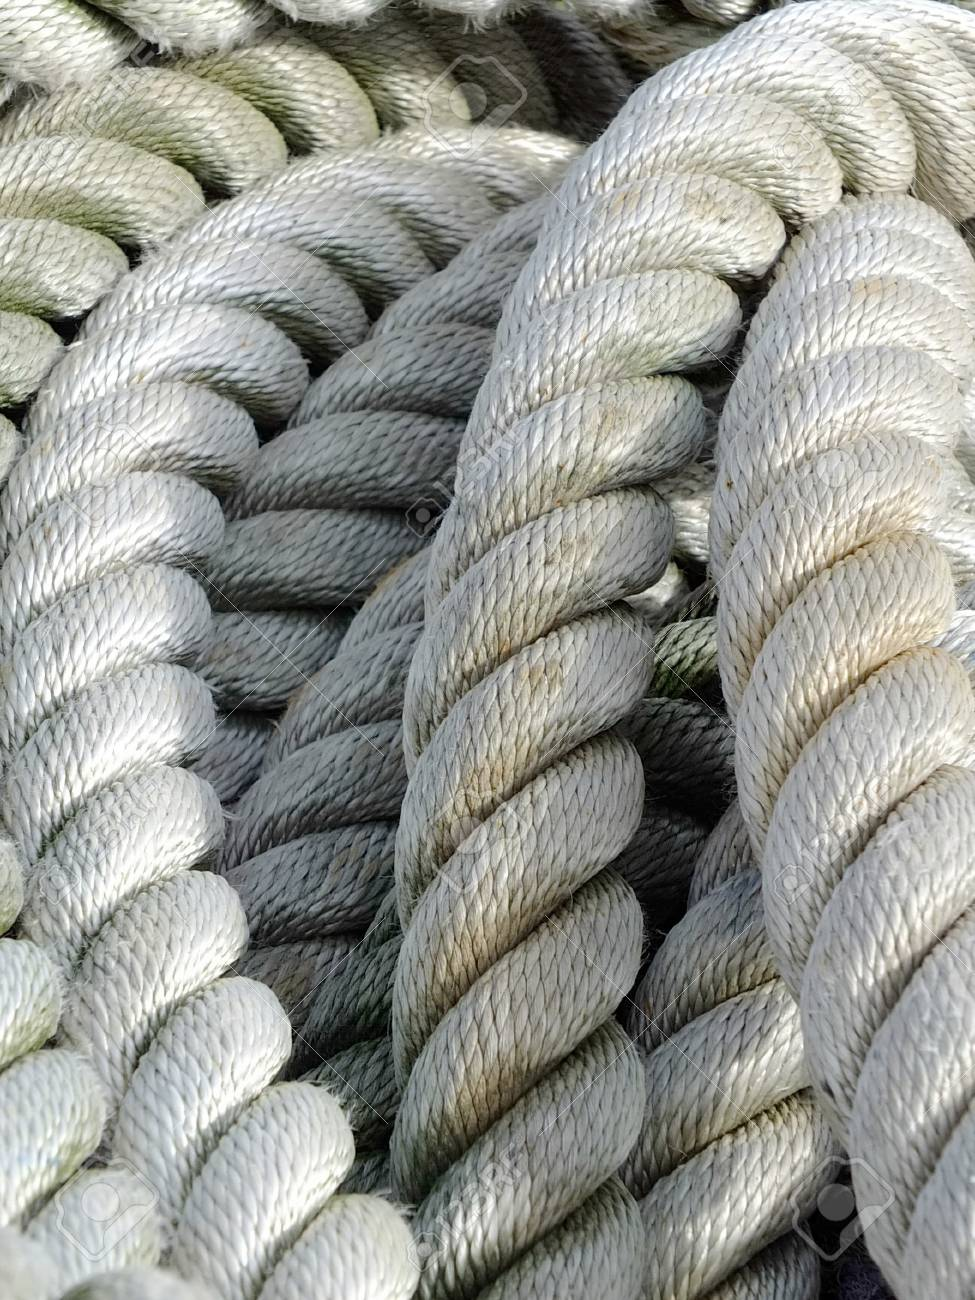 Image of a old boat rope Standard-Bild - 47932996